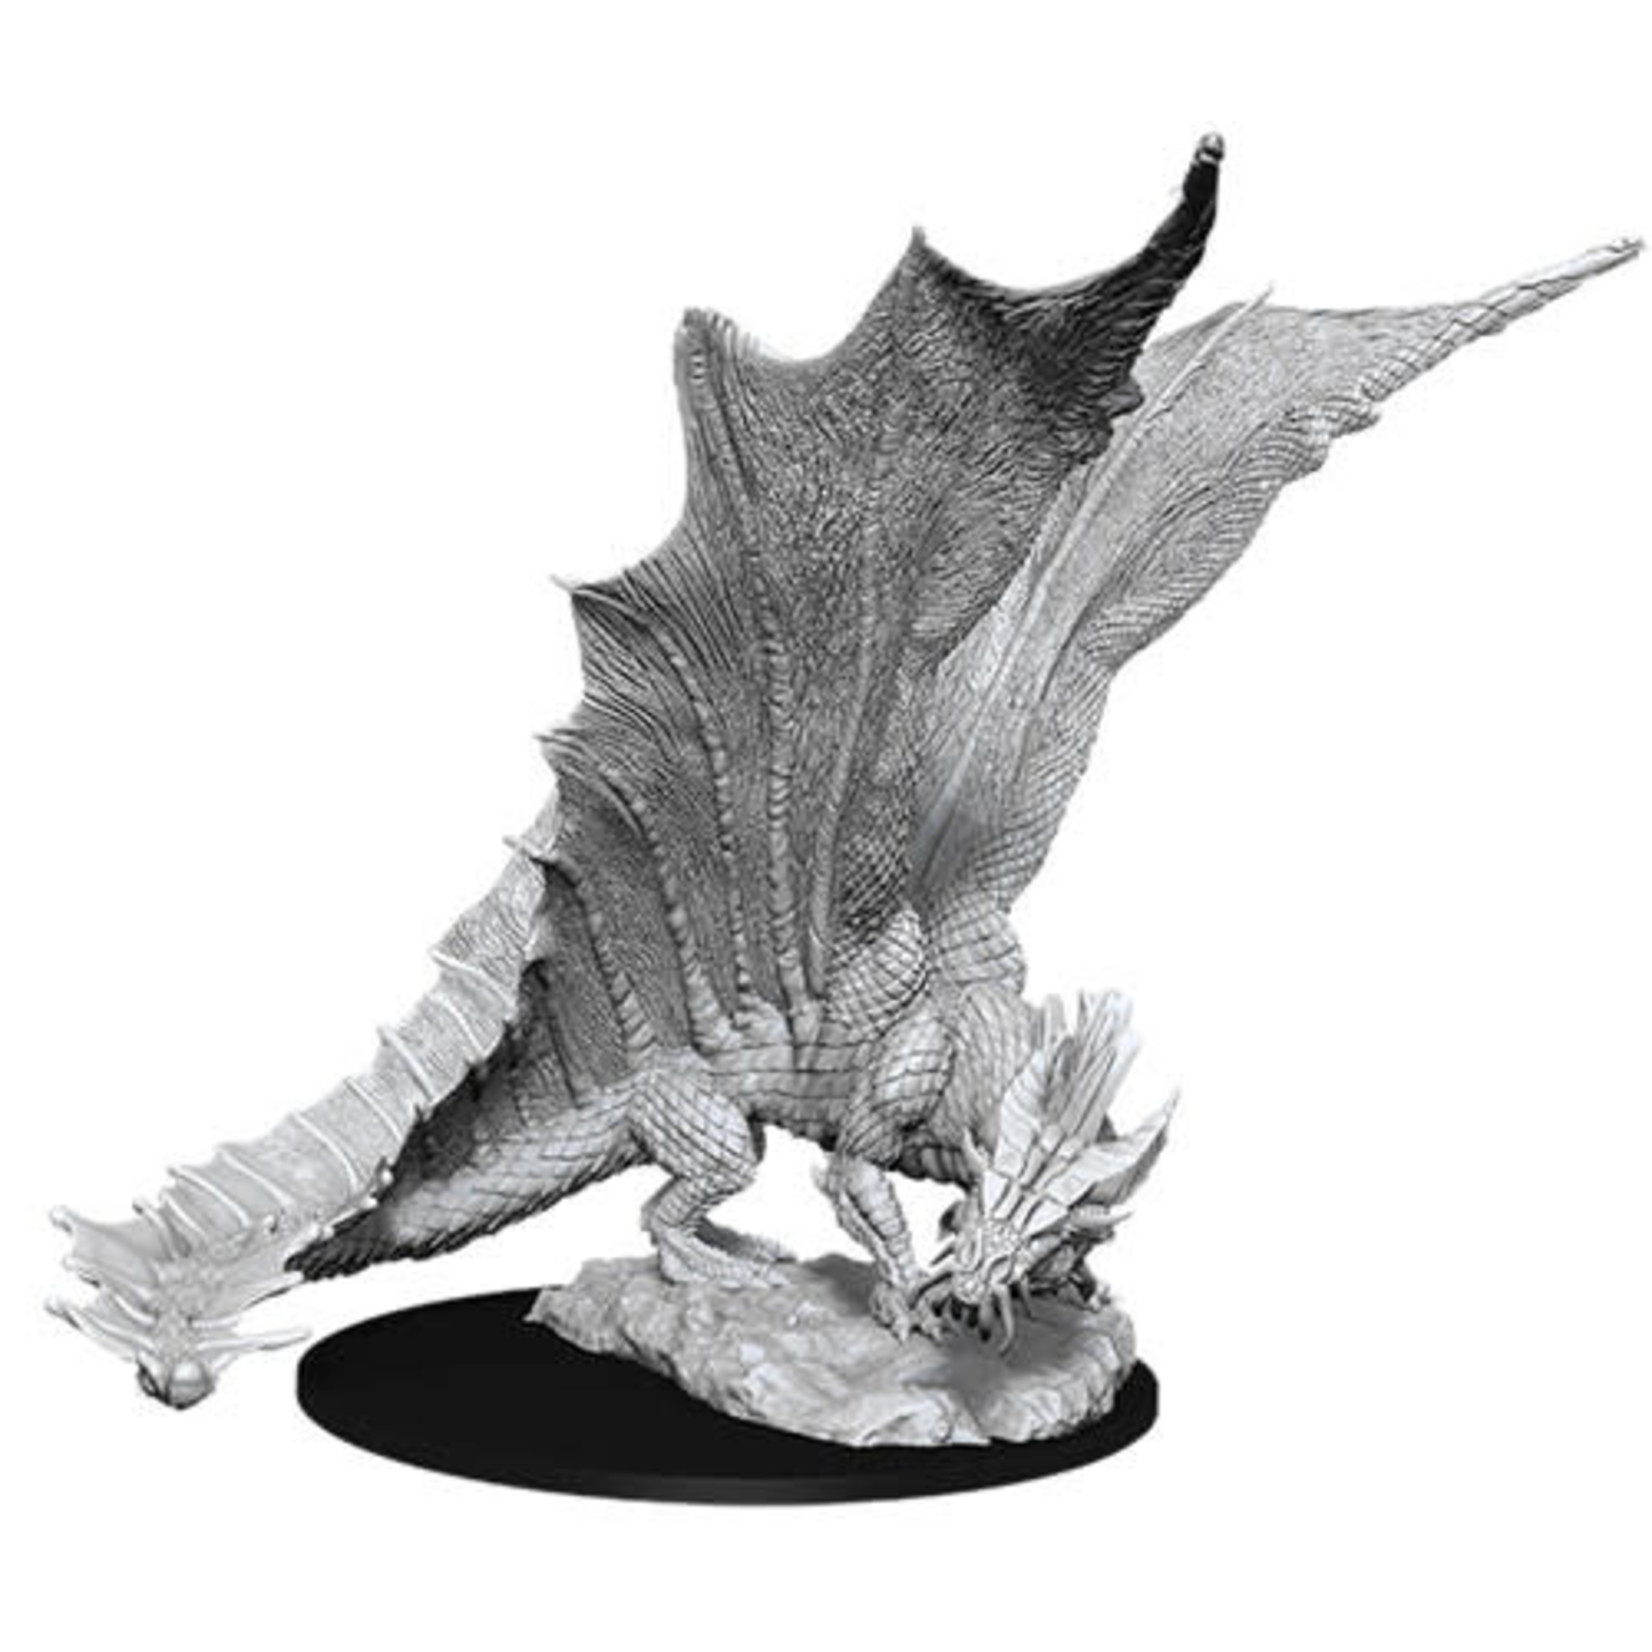 D&D Unpainted Minis: Young Gold Dragon